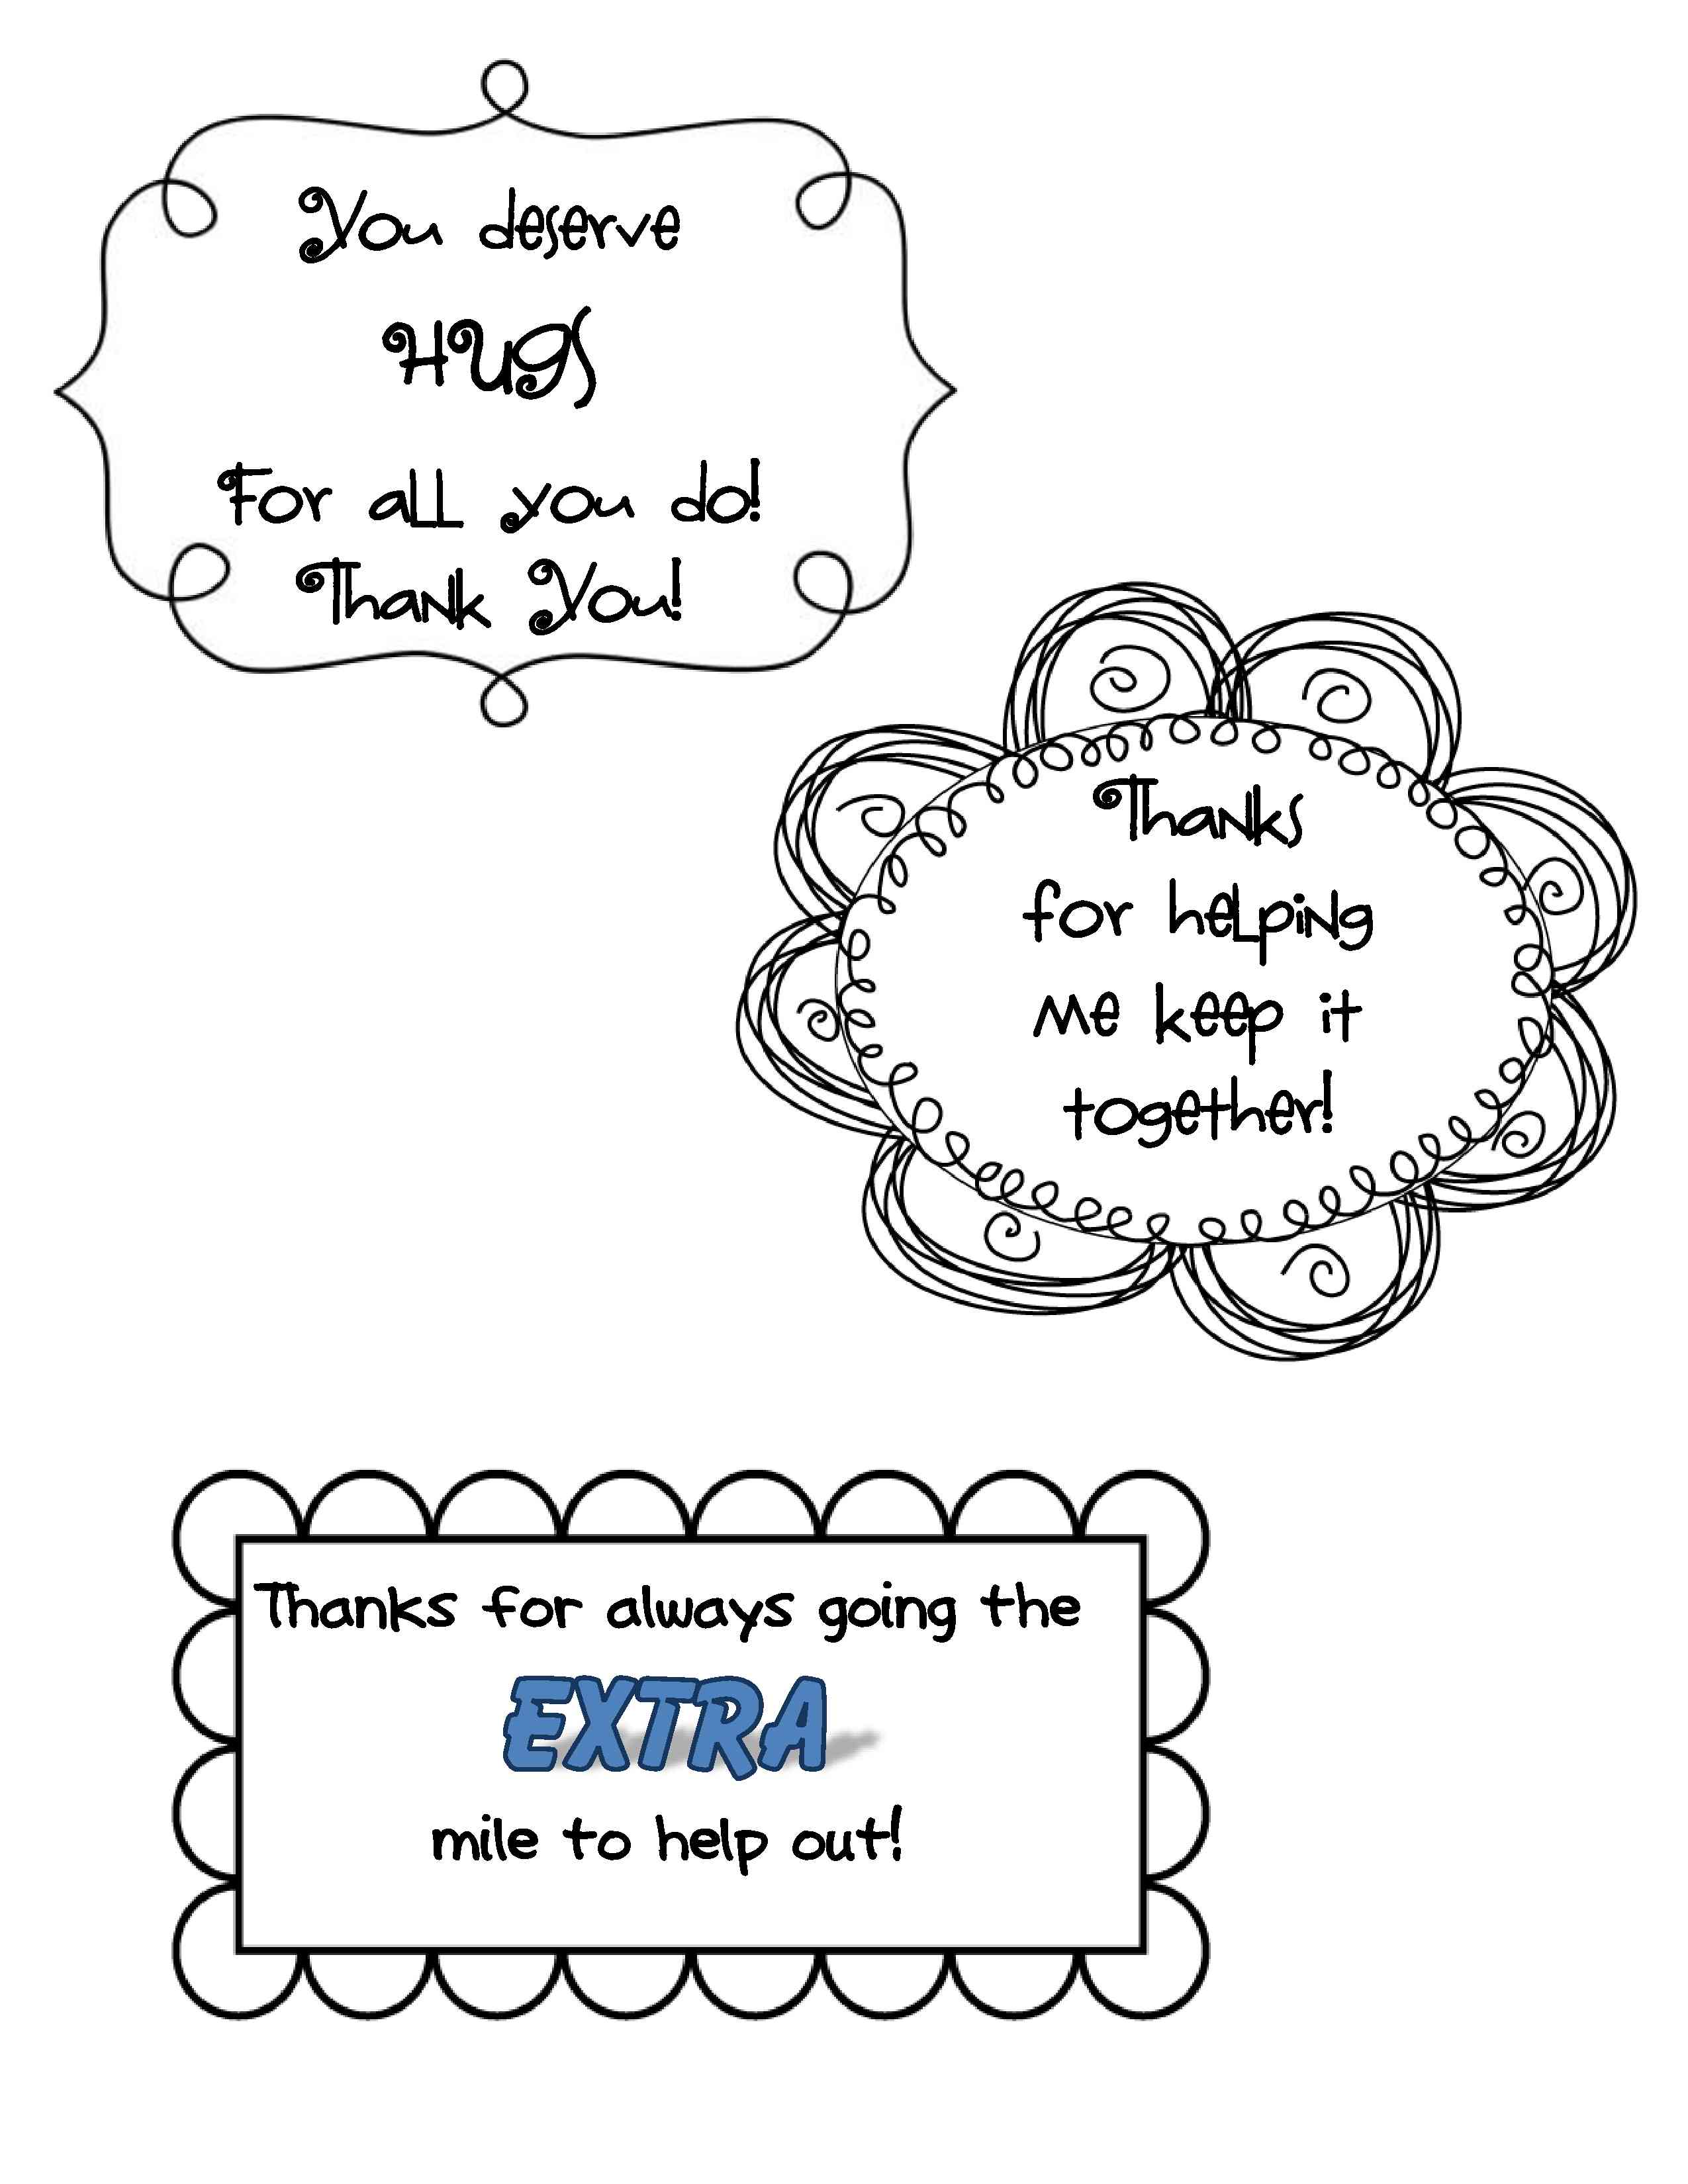 Library of thanks for going the extra mile gum clipart